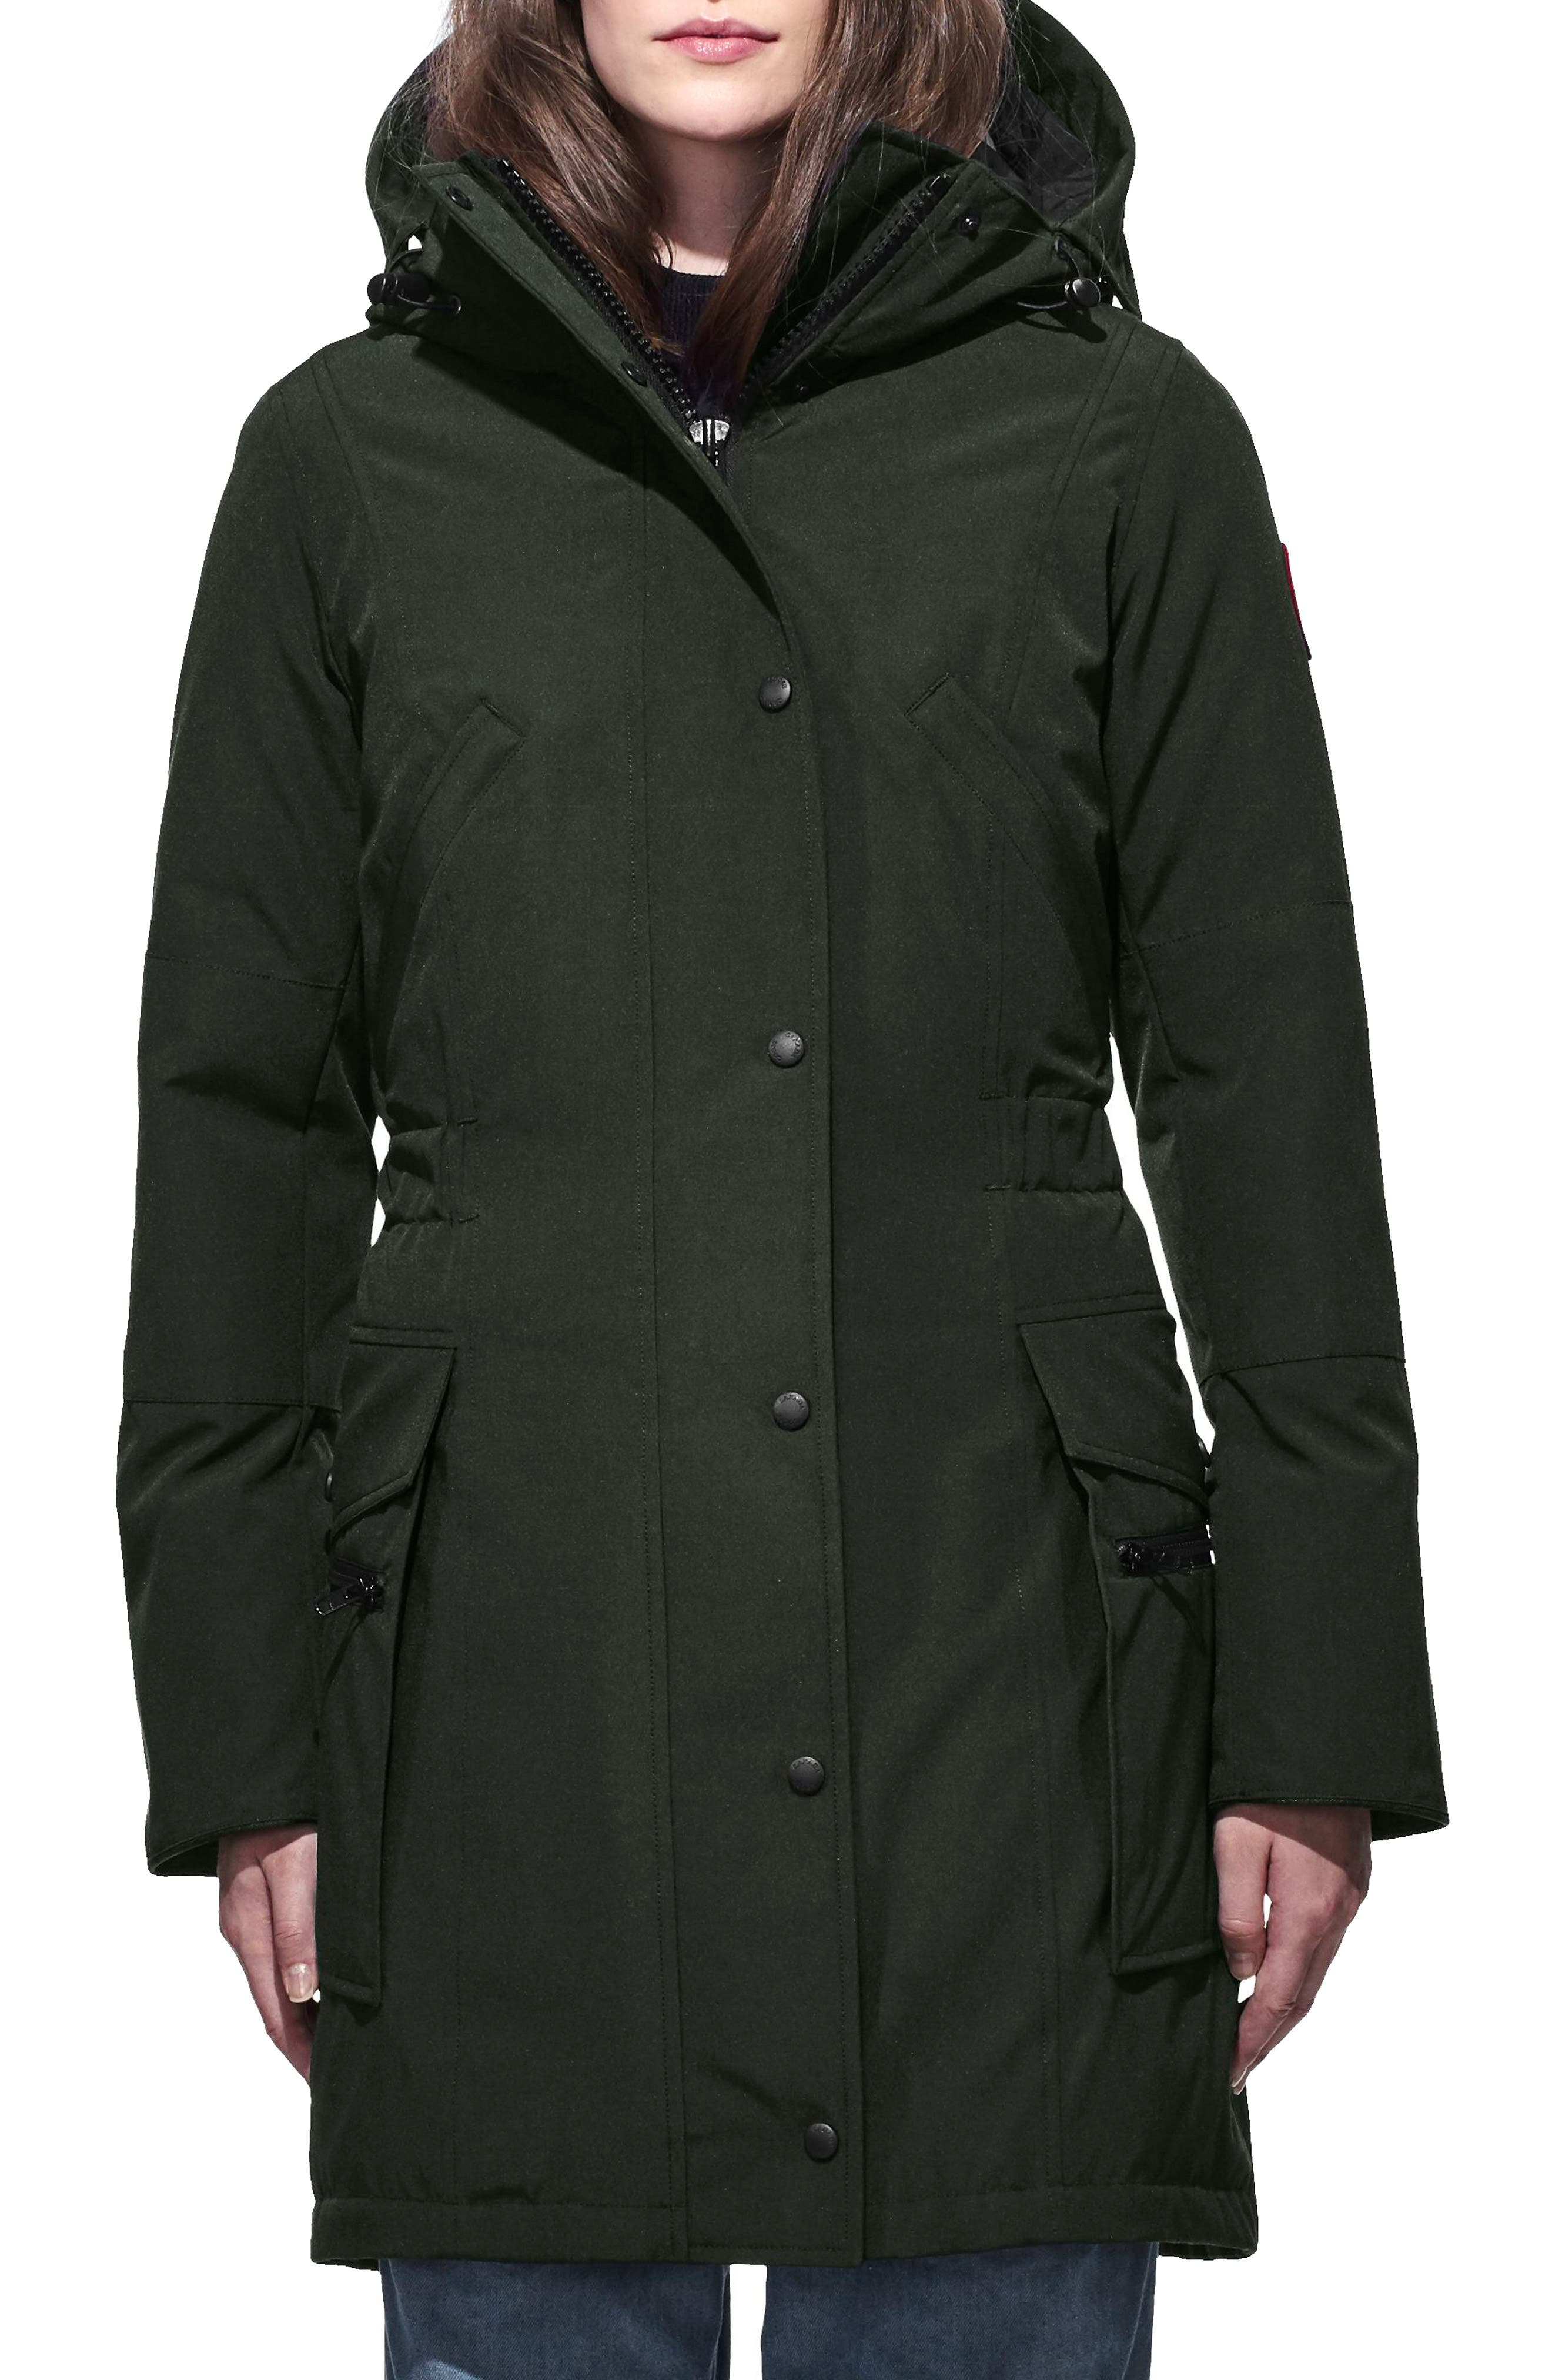 Kinley Insulated Parka,                         Main,                         color, VOLCANO